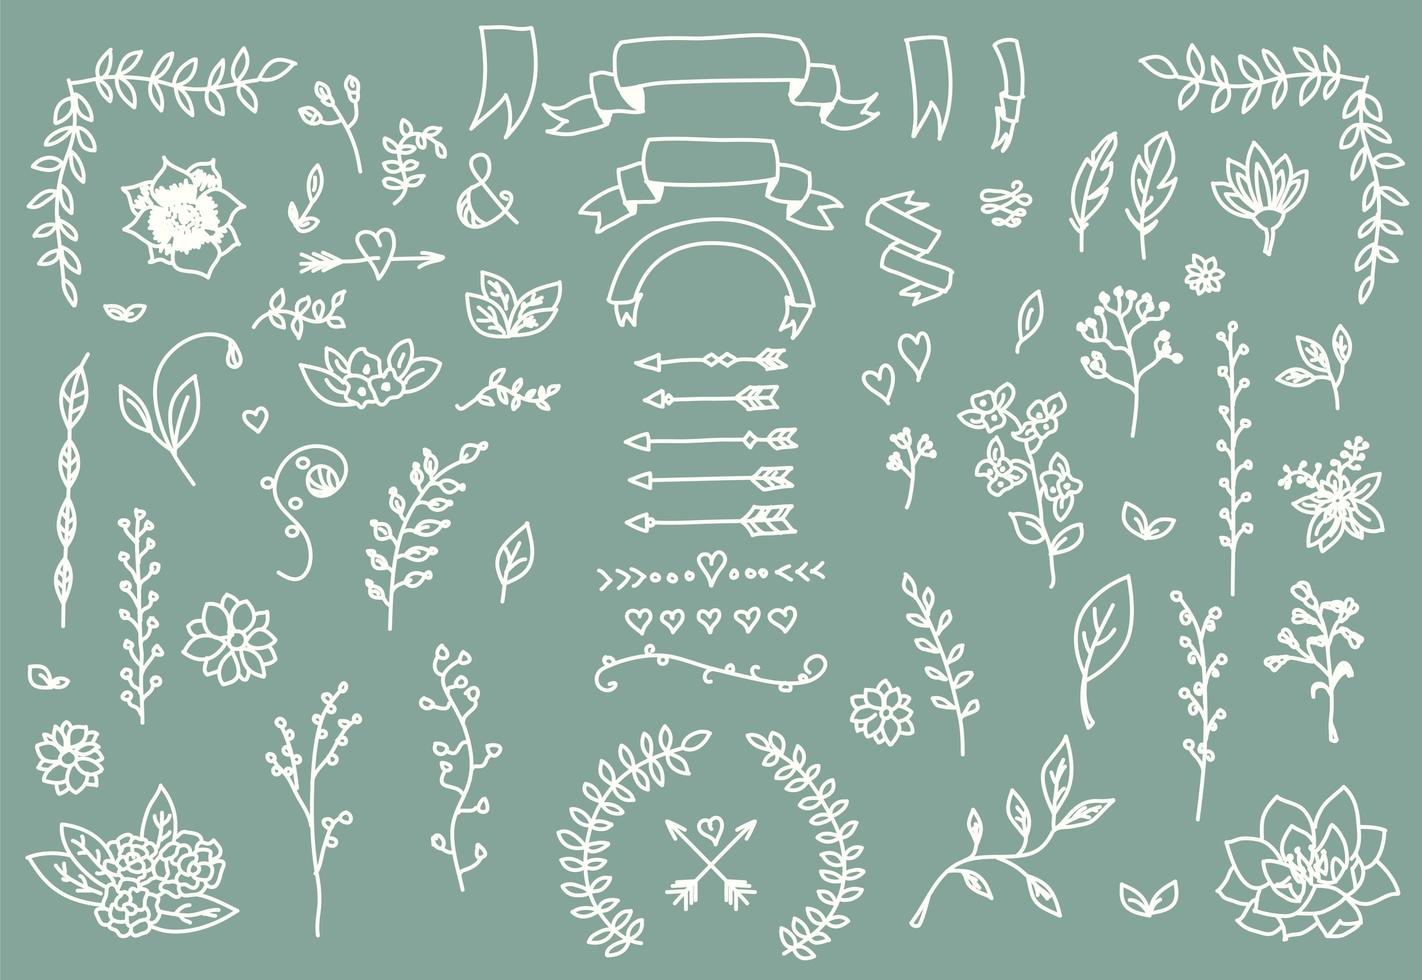 Hand drawn vintage arrows, feathers, dividers and floral elements vector